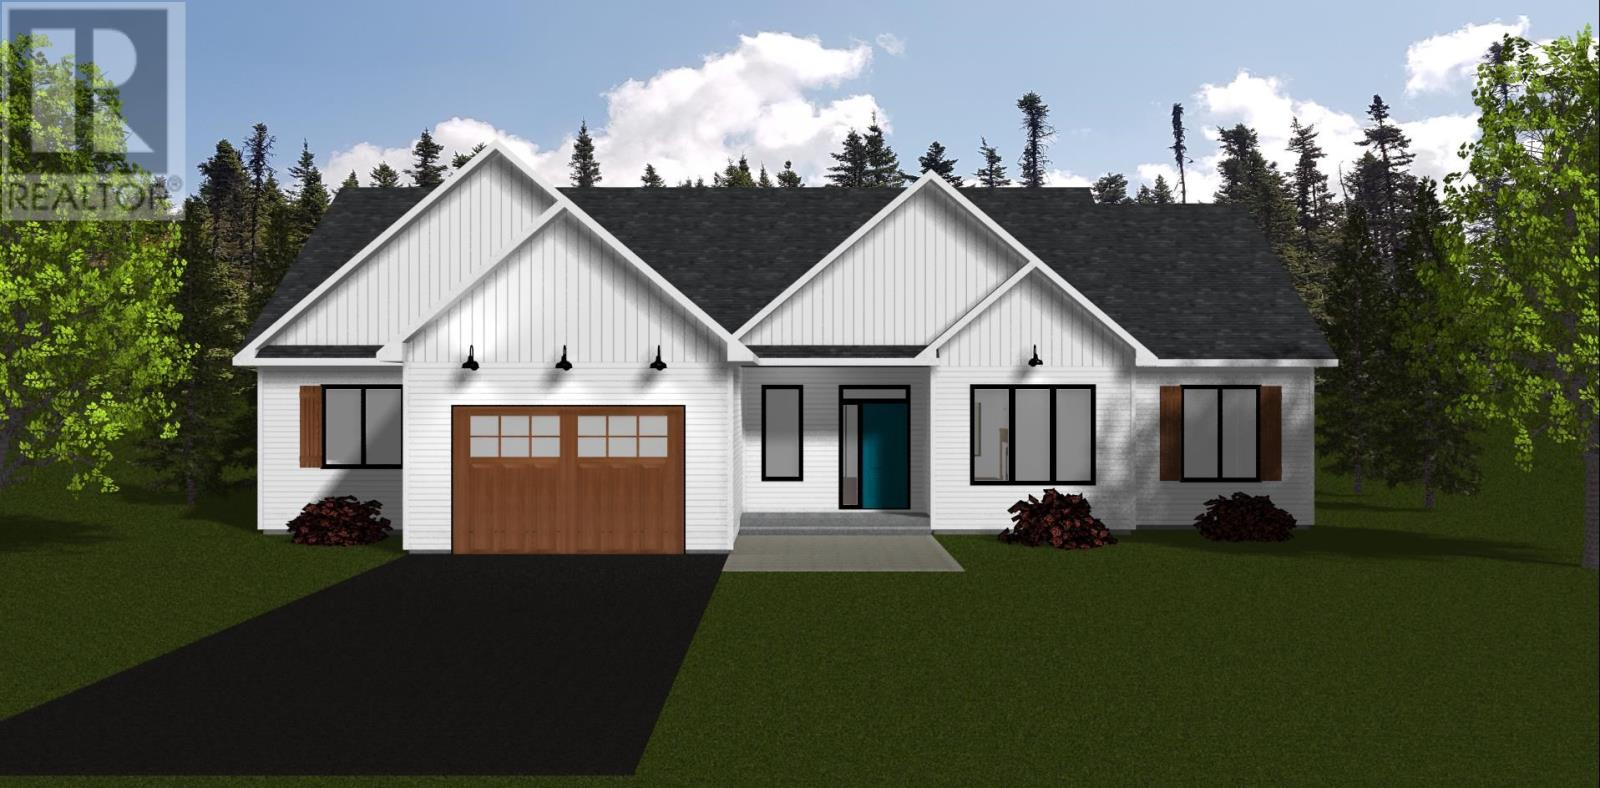 1214721, 14 Sparta Place, Portugal Cove - St. Philips